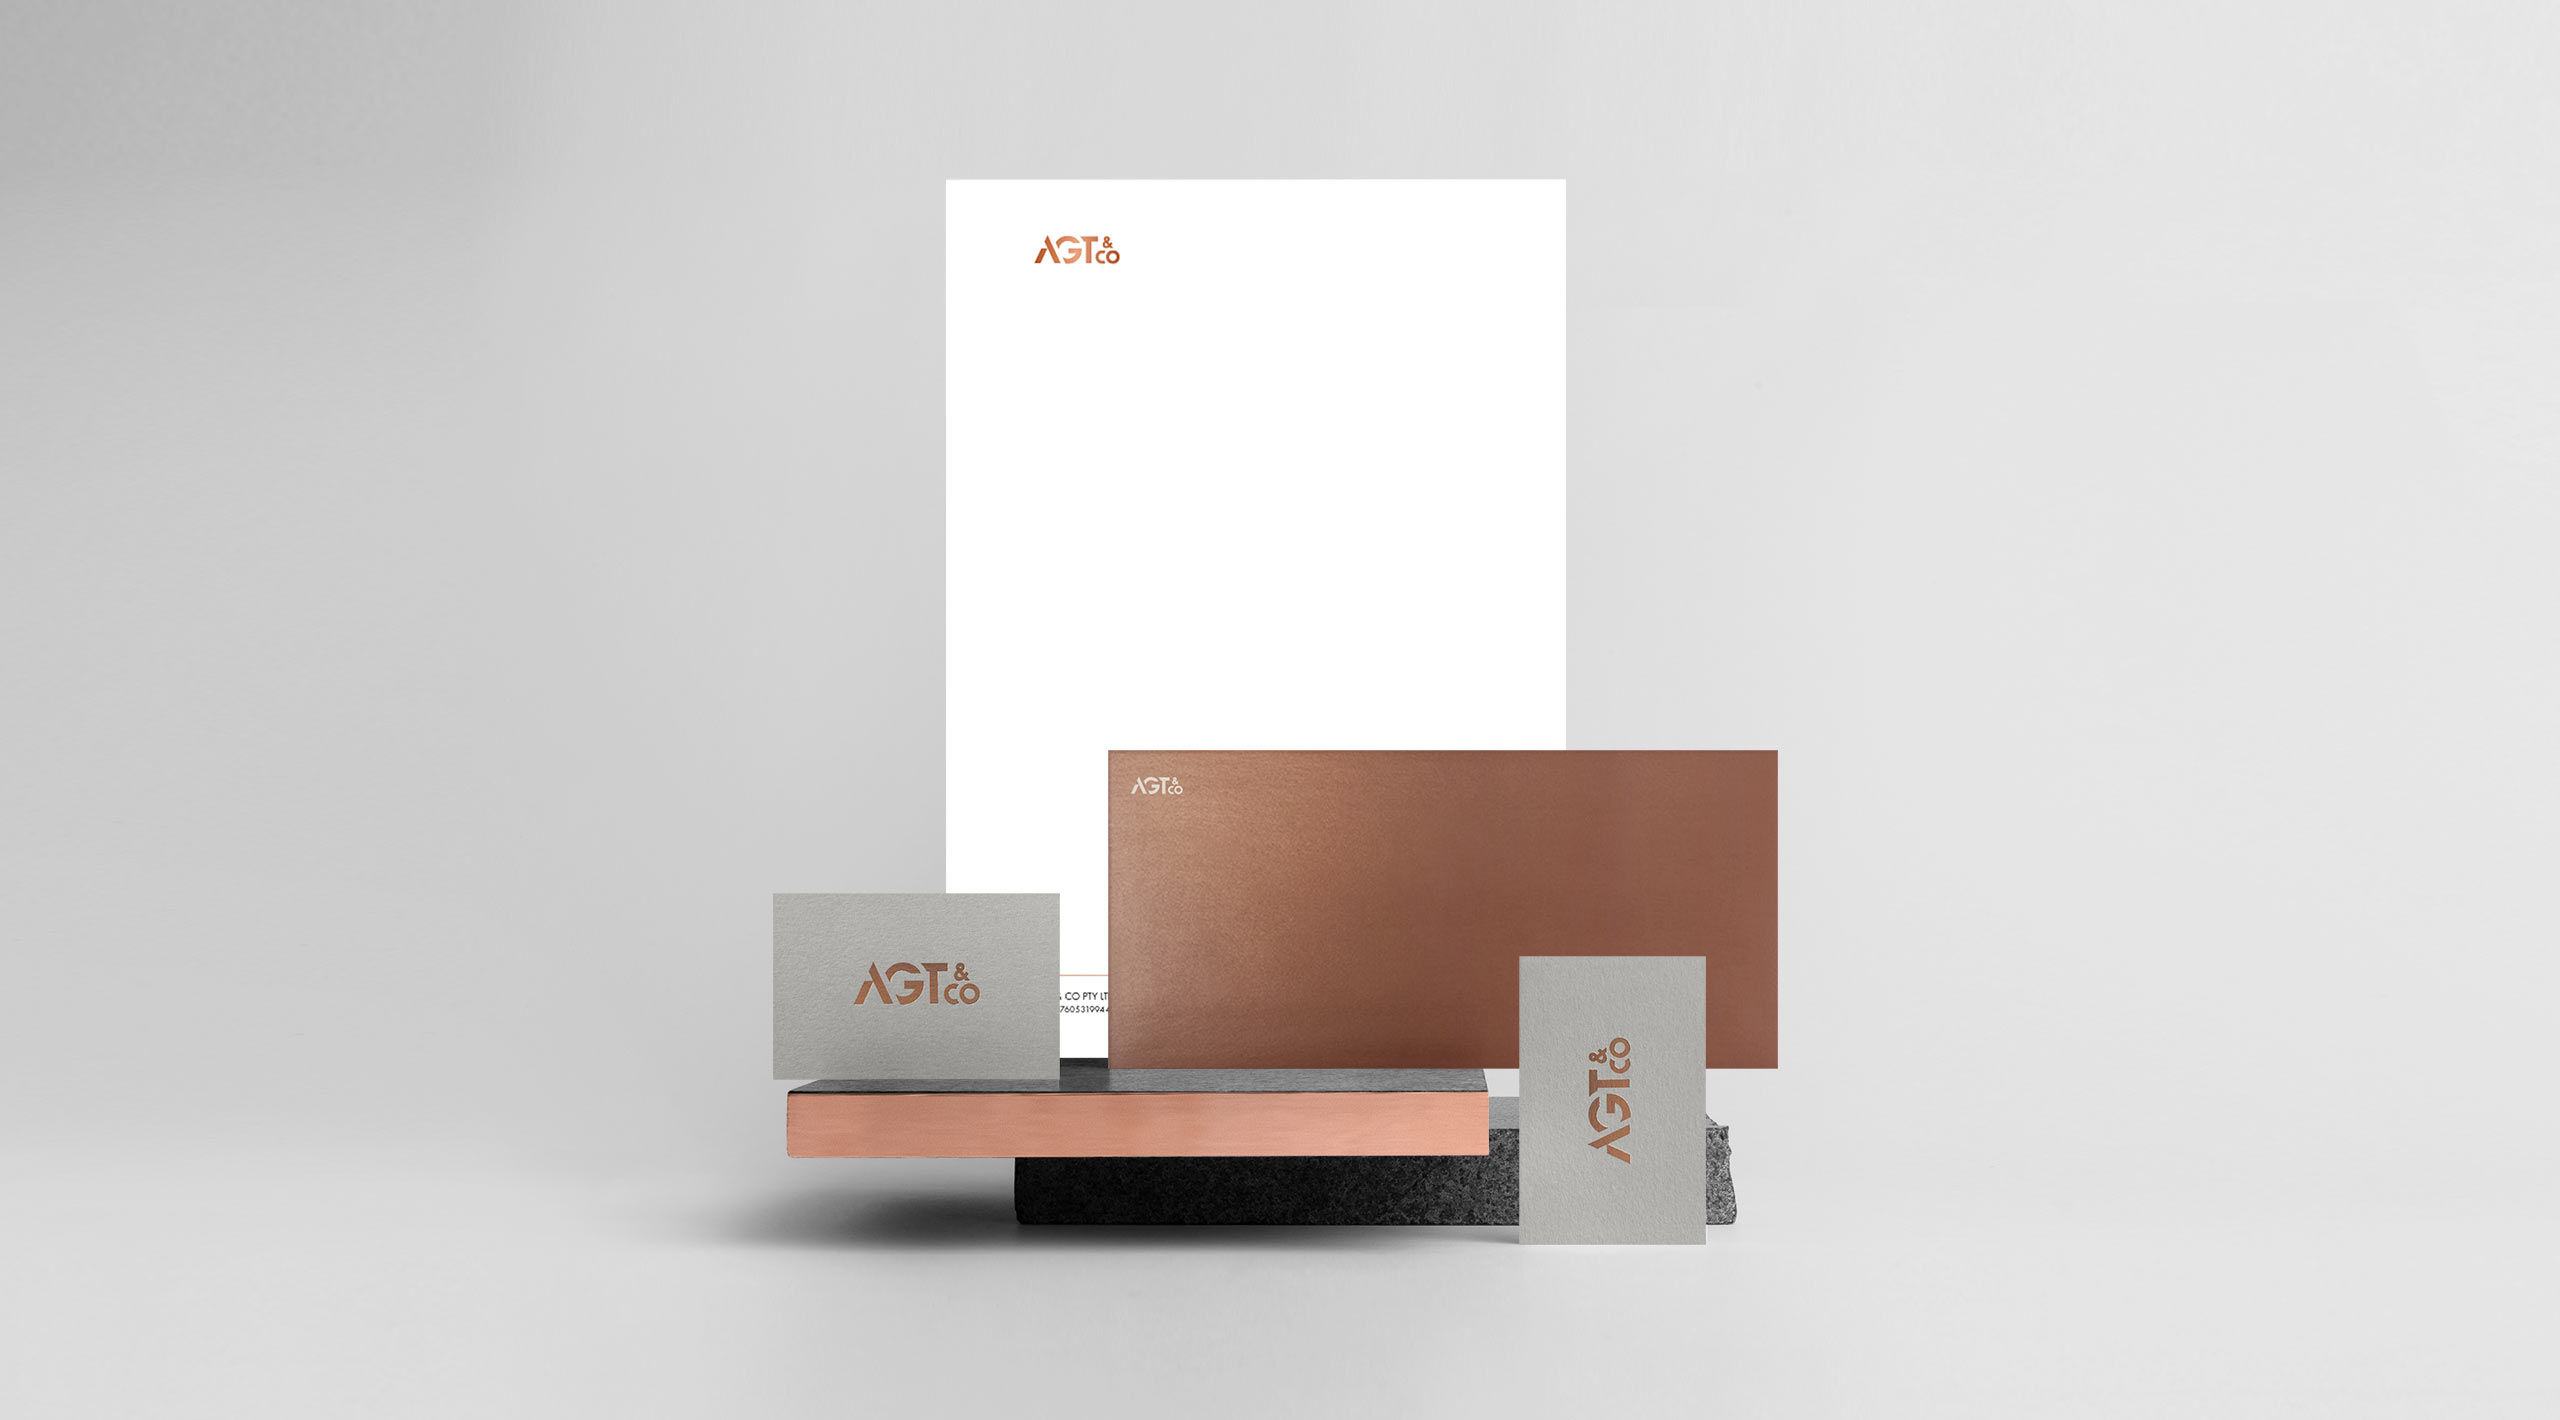 agt co copper stationery front view